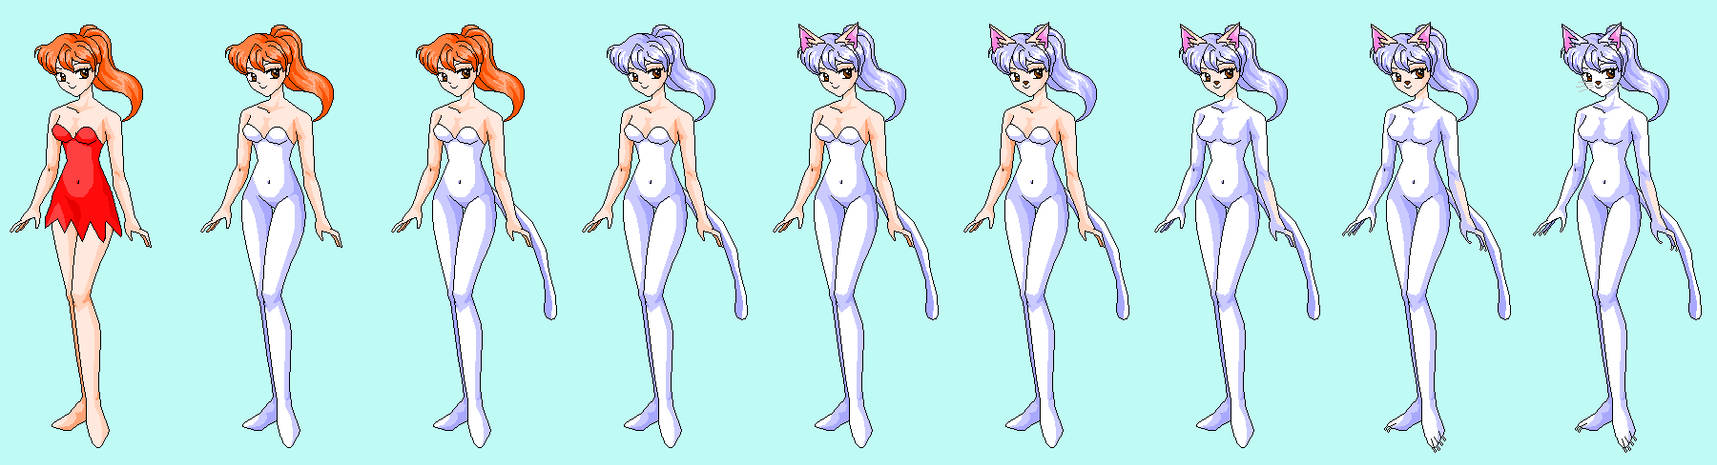 Anthro Cat Girl Transformation Wwwtopsimagescom